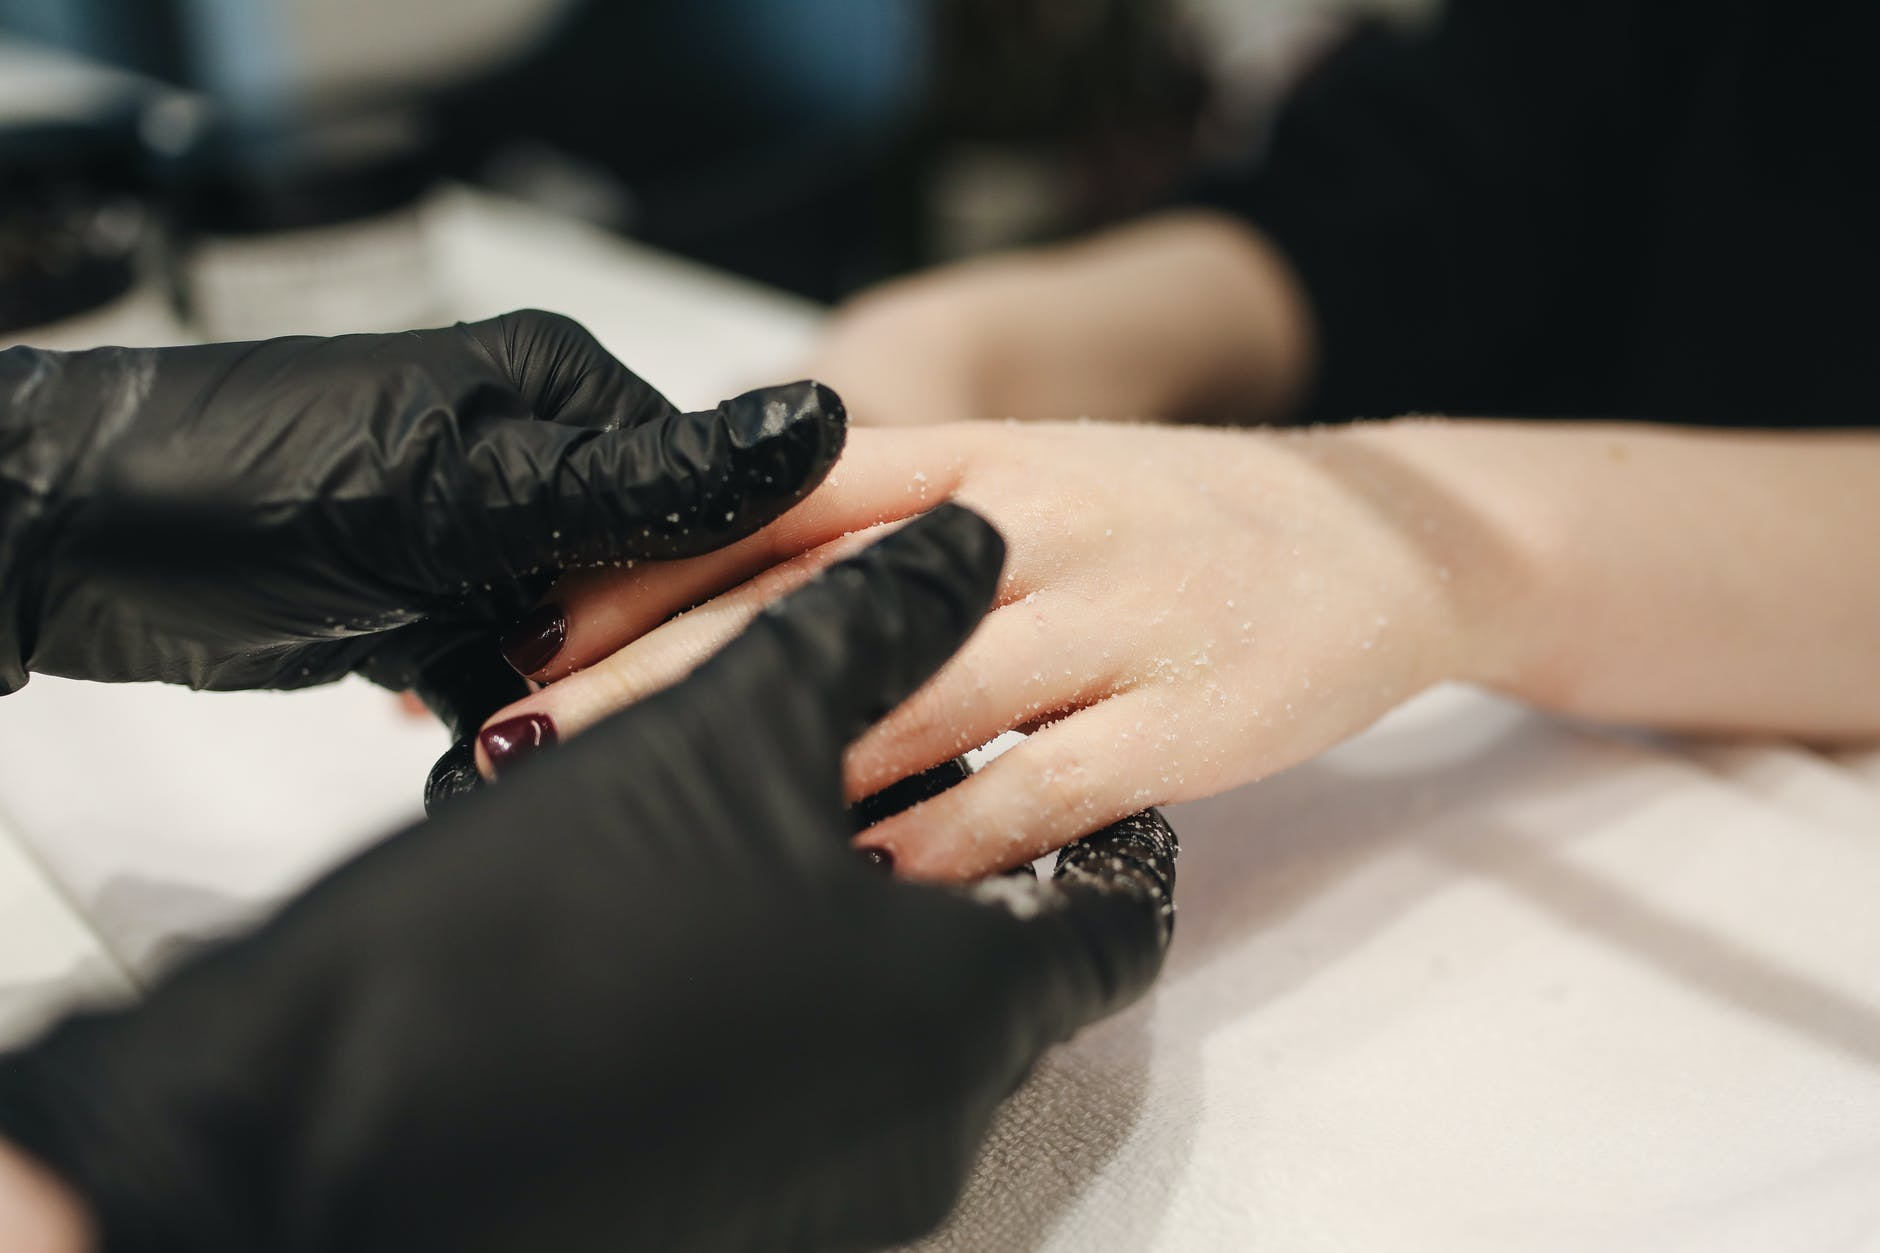 person wearing black gloves massaging a person s hand